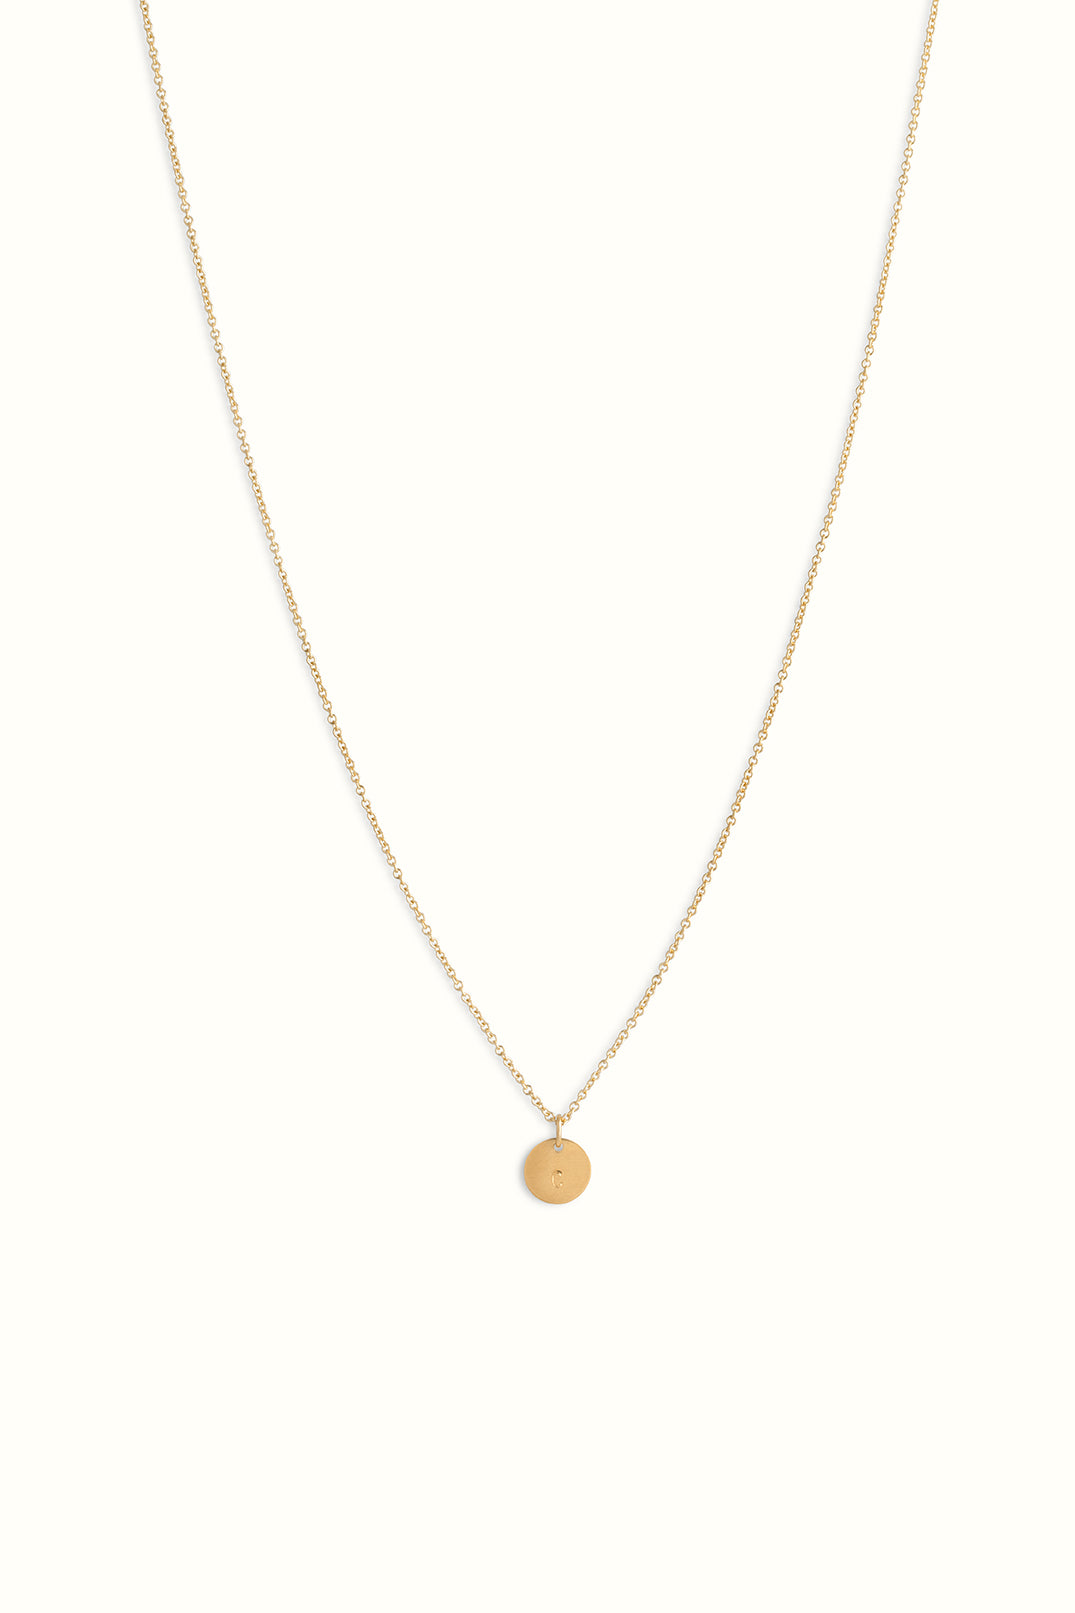 gold filled round cable necklace with a round disc style initial pendant